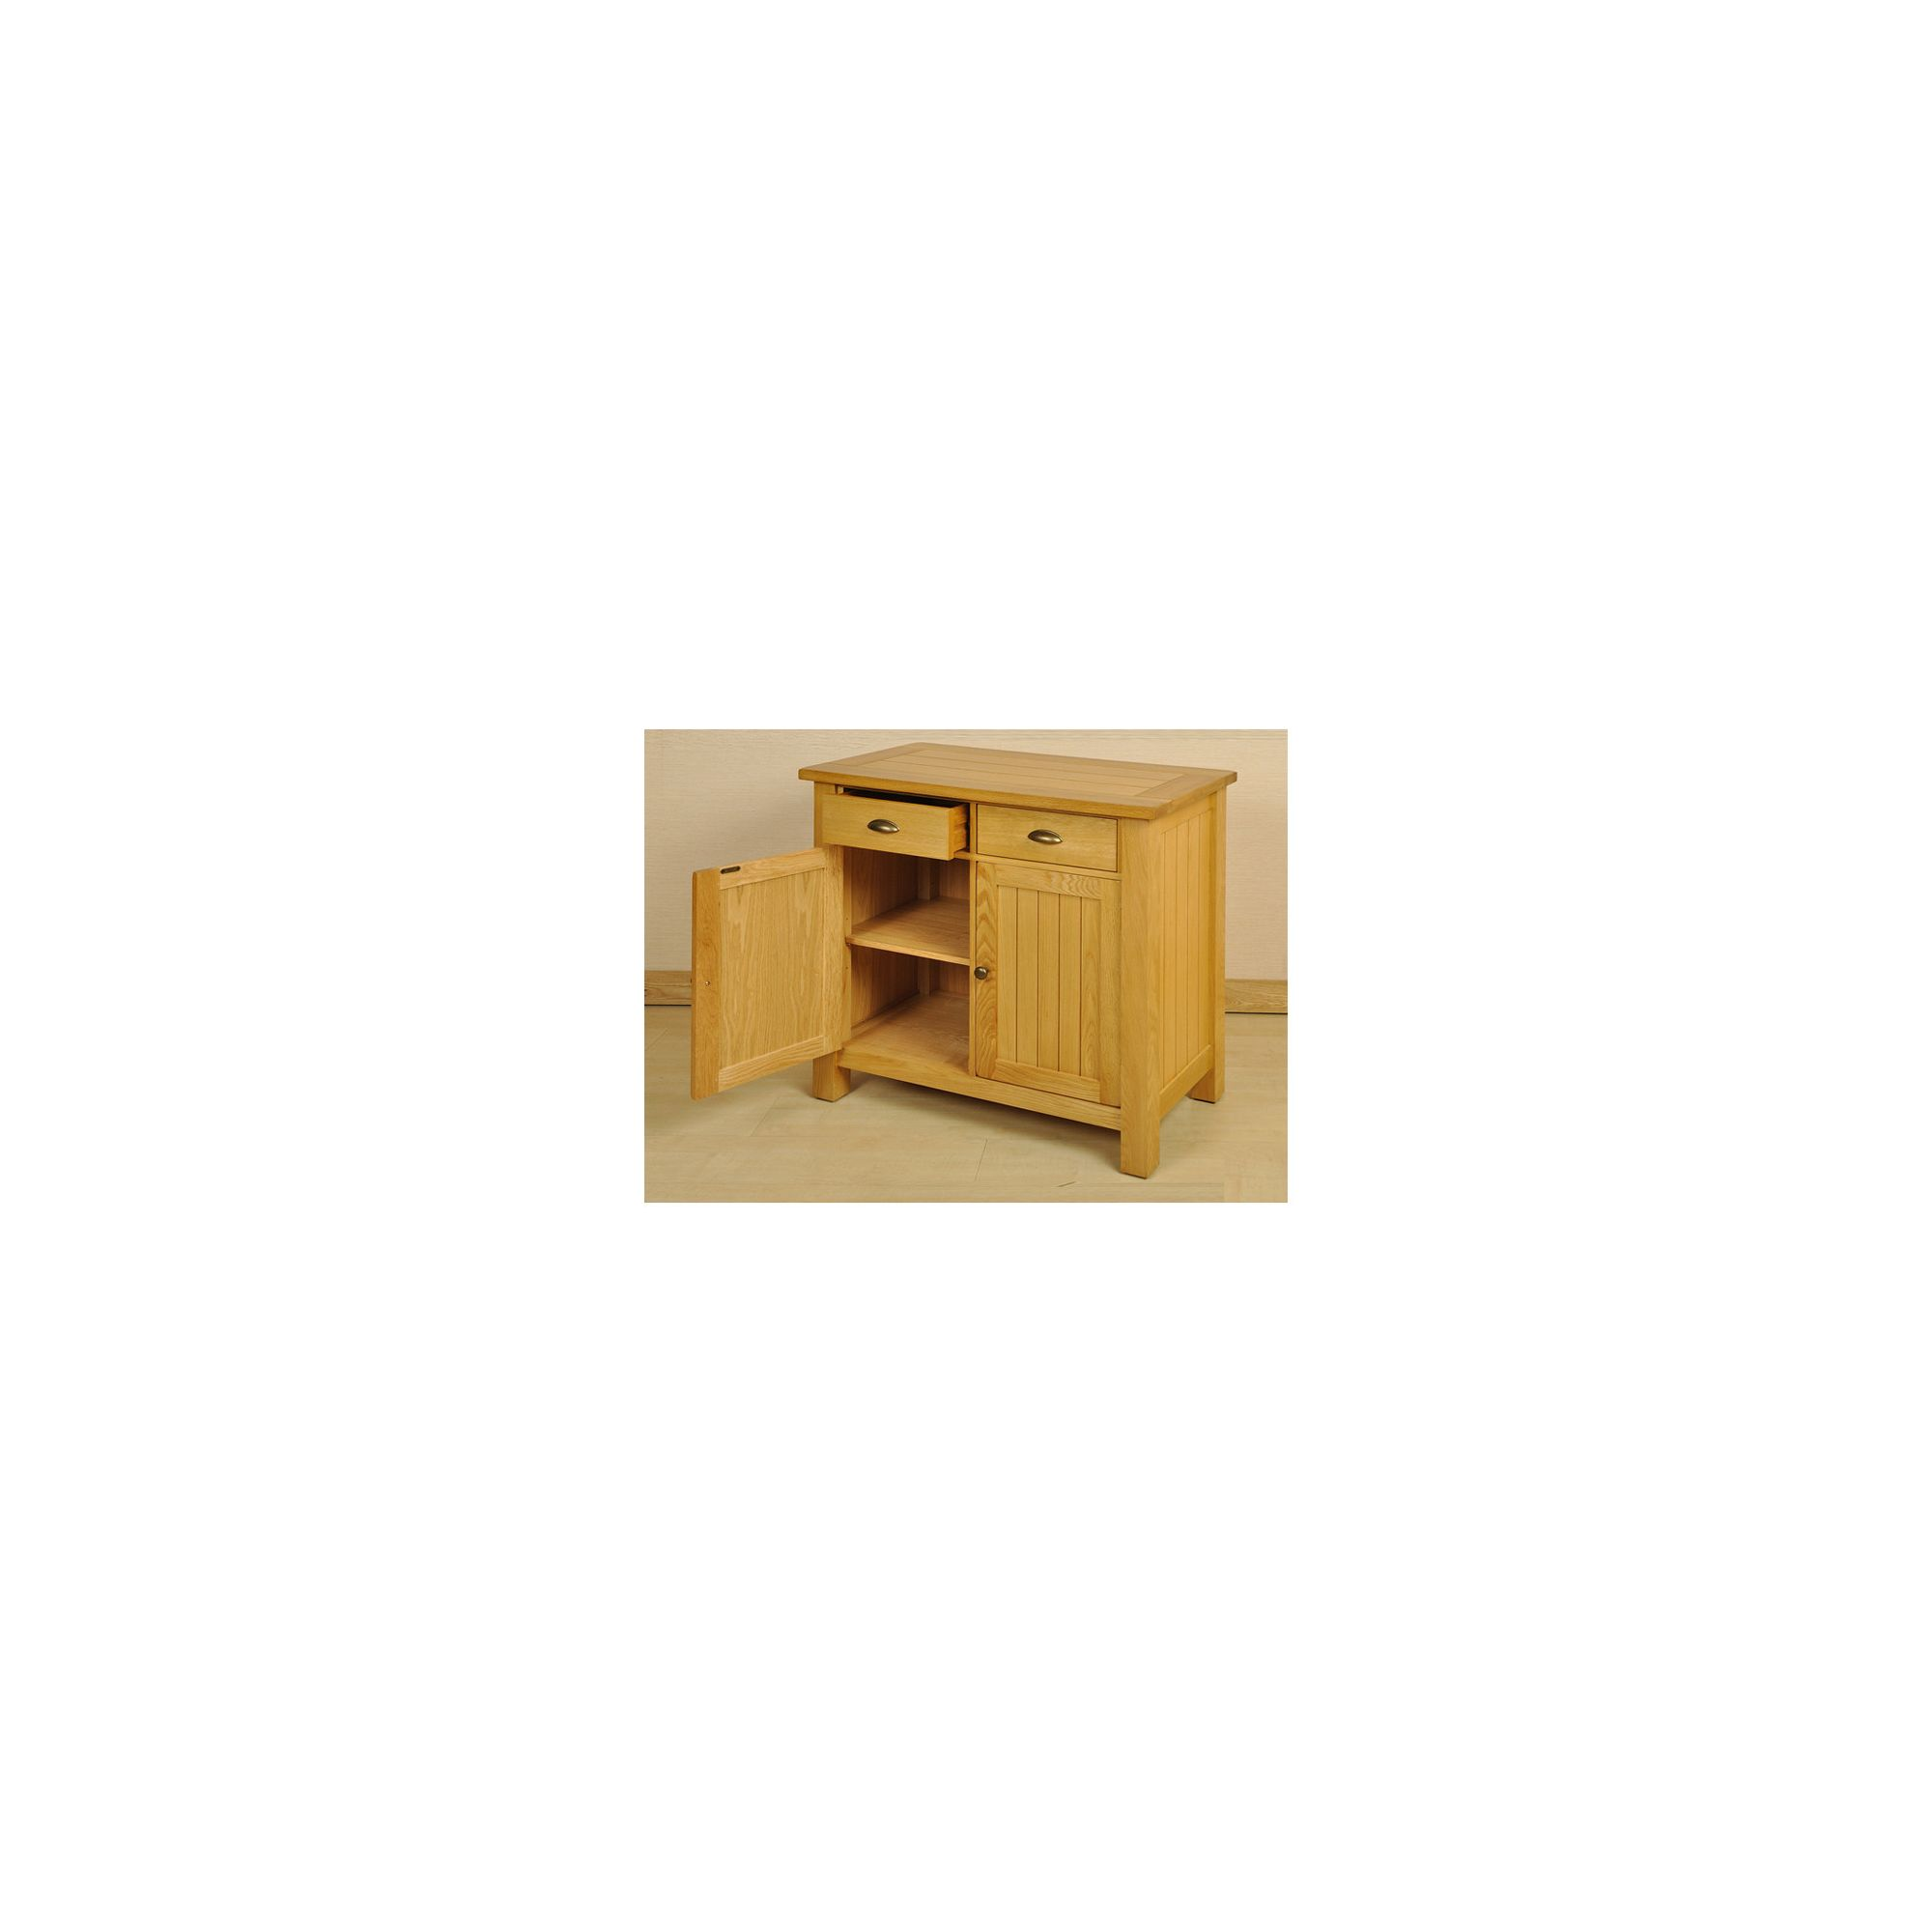 Origin Red Balmoral Oak 2 Door Sideboard at Tesco Direct